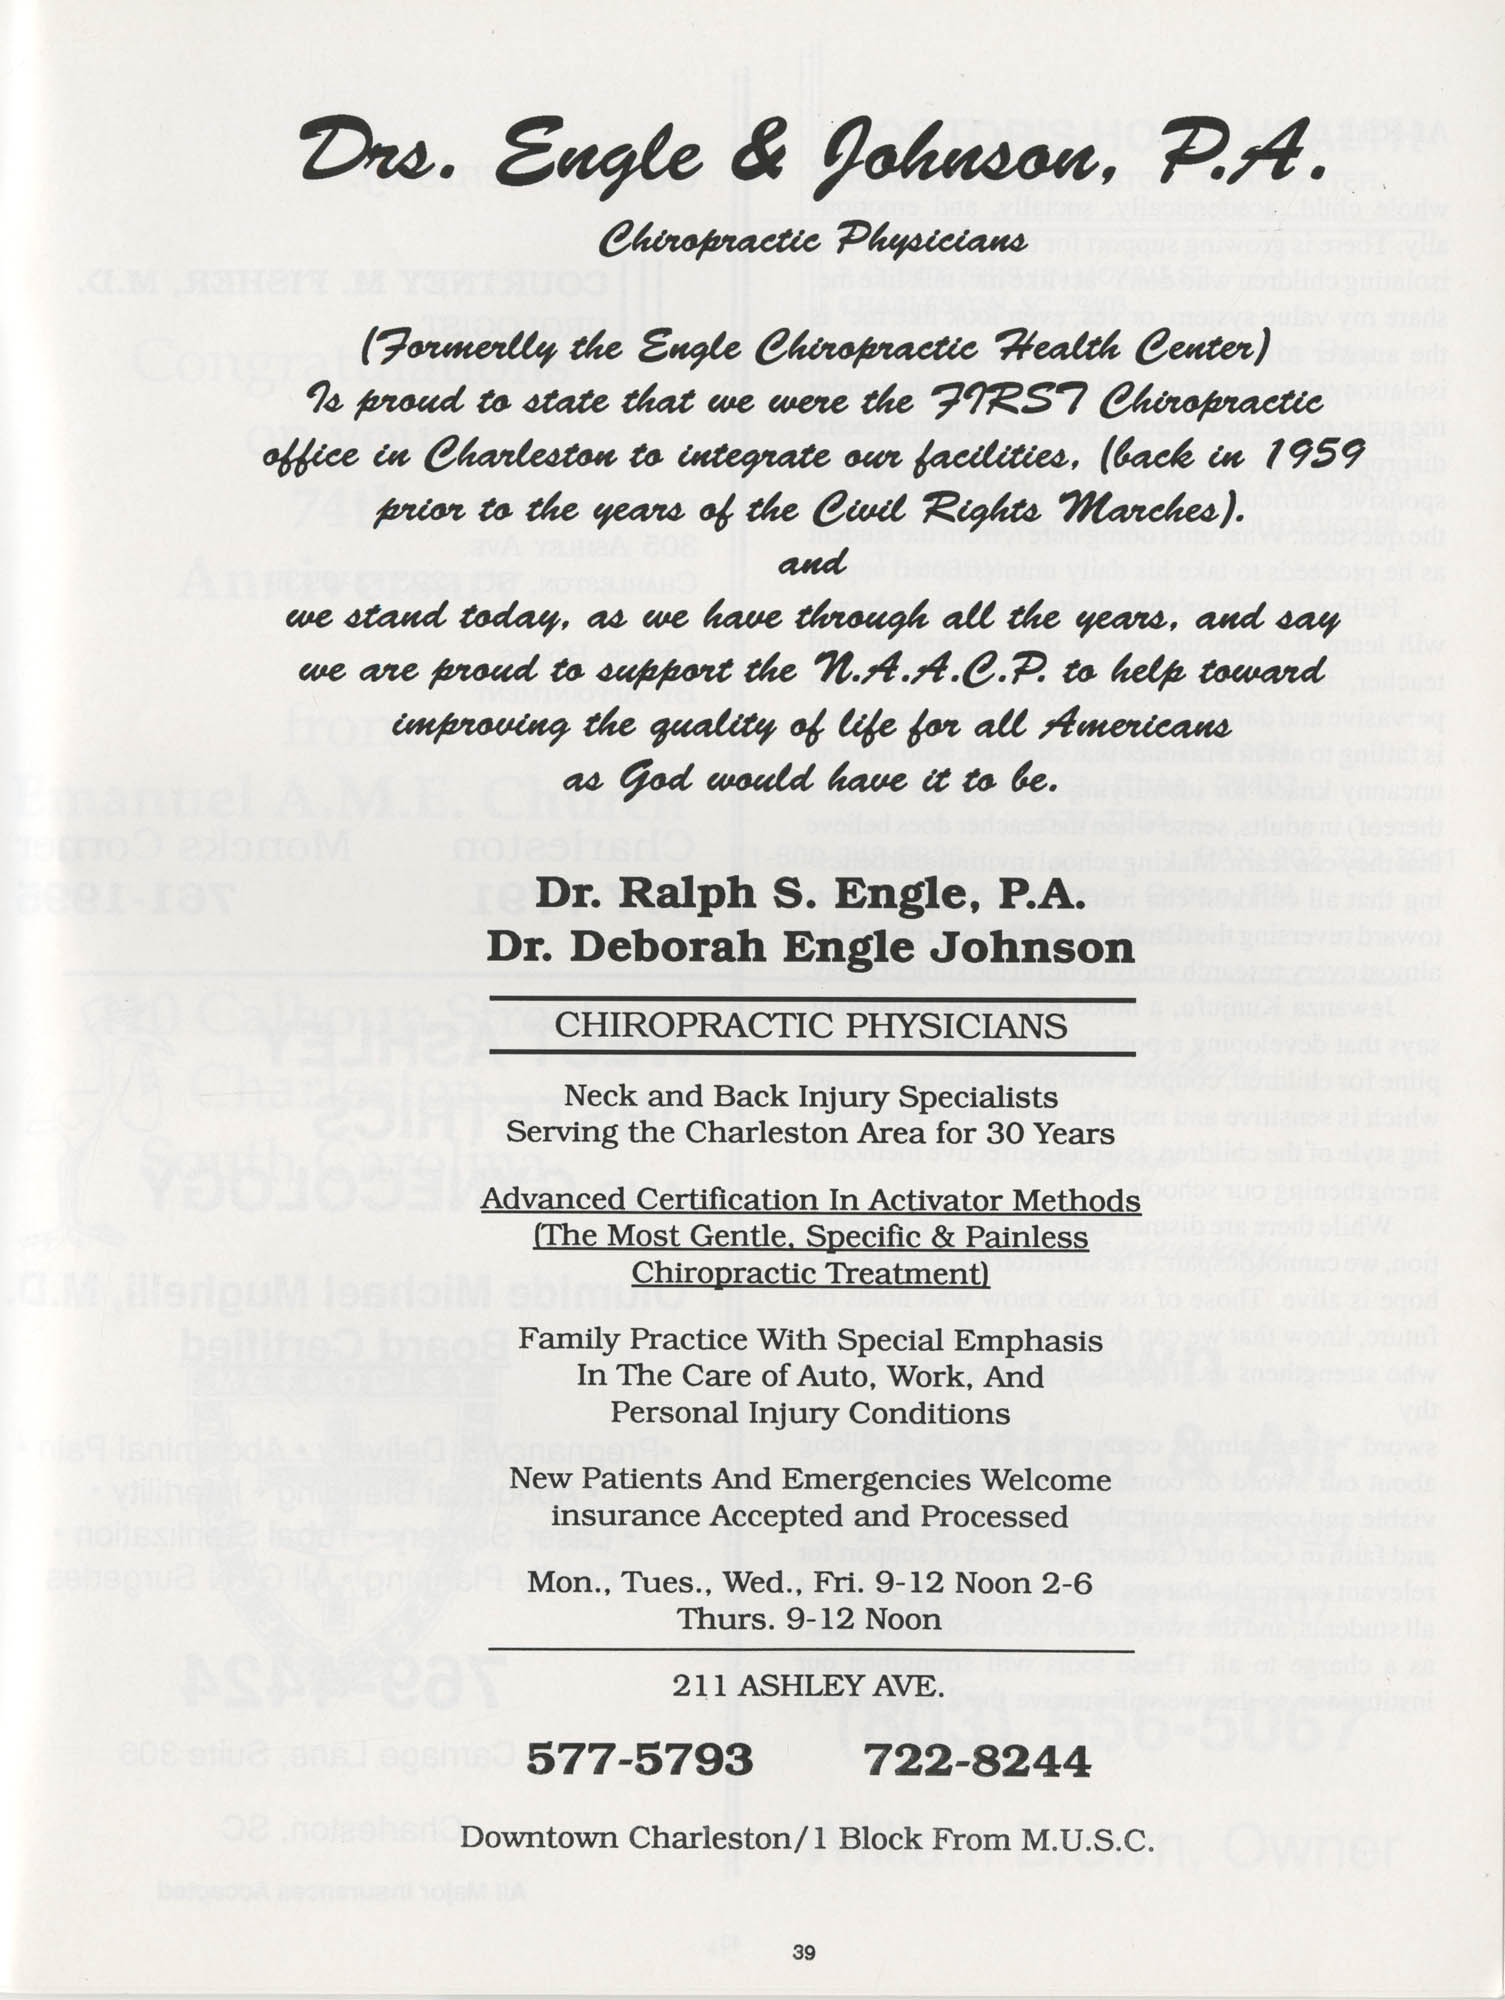 1990 NAACP Freedom Fund Magazine, Charleston Branch of the NAACP, 74th Anniversary, Page 39